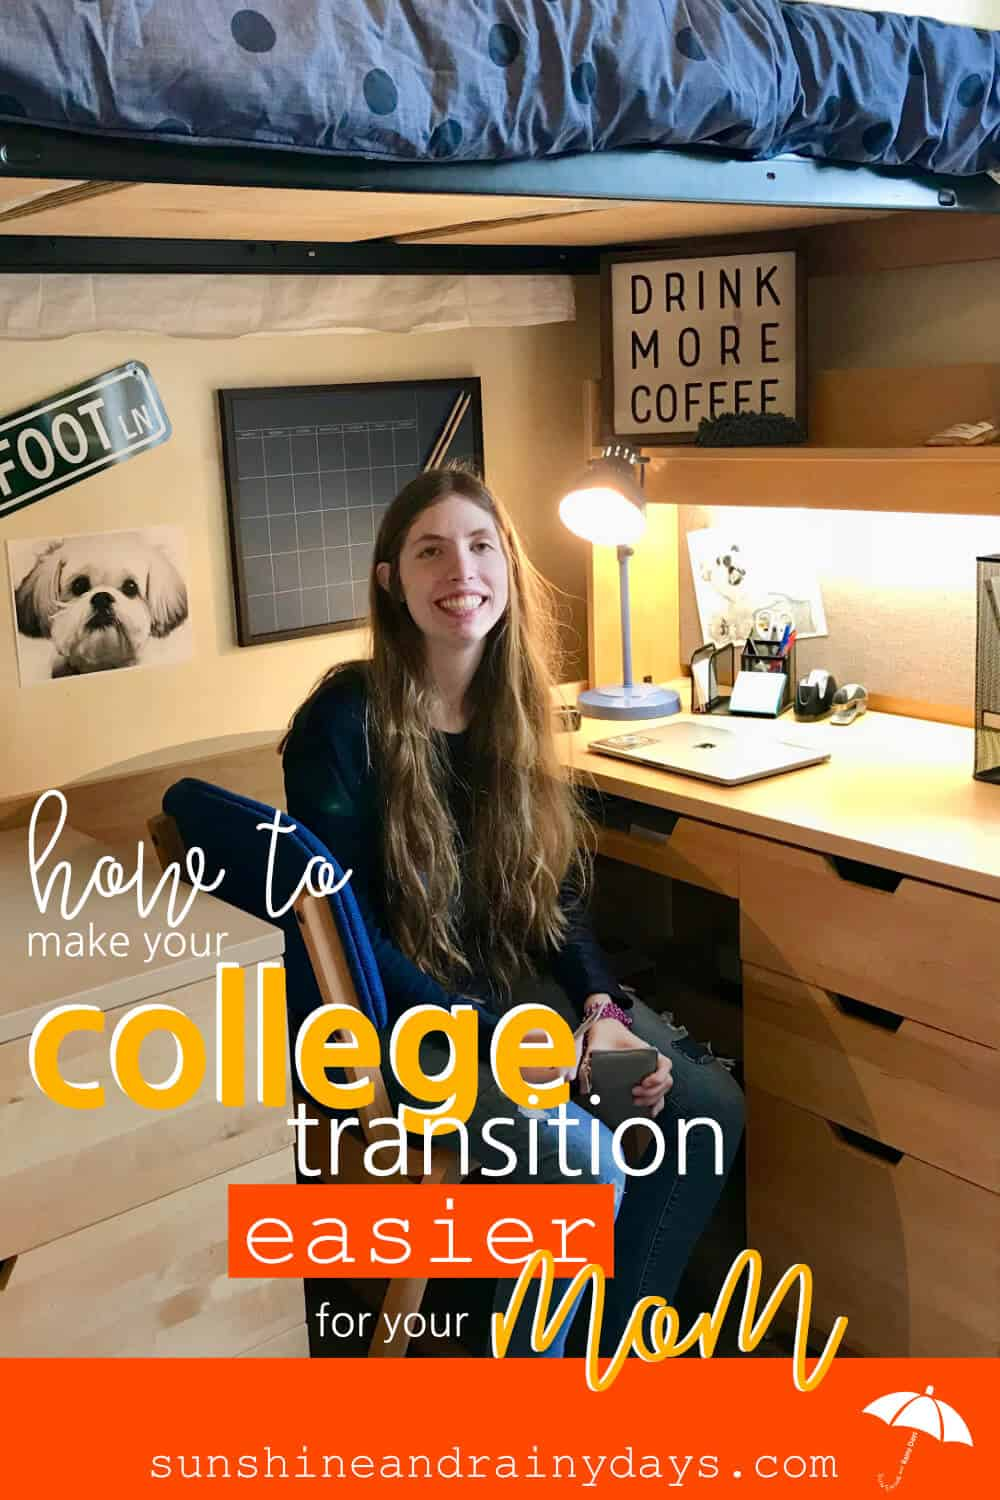 We parents work hard to make the college transition easier on our kids. Then the day comes when we drive away from campus. That day is hard. College Transition   College Transition Tips   #college #moms #SARD